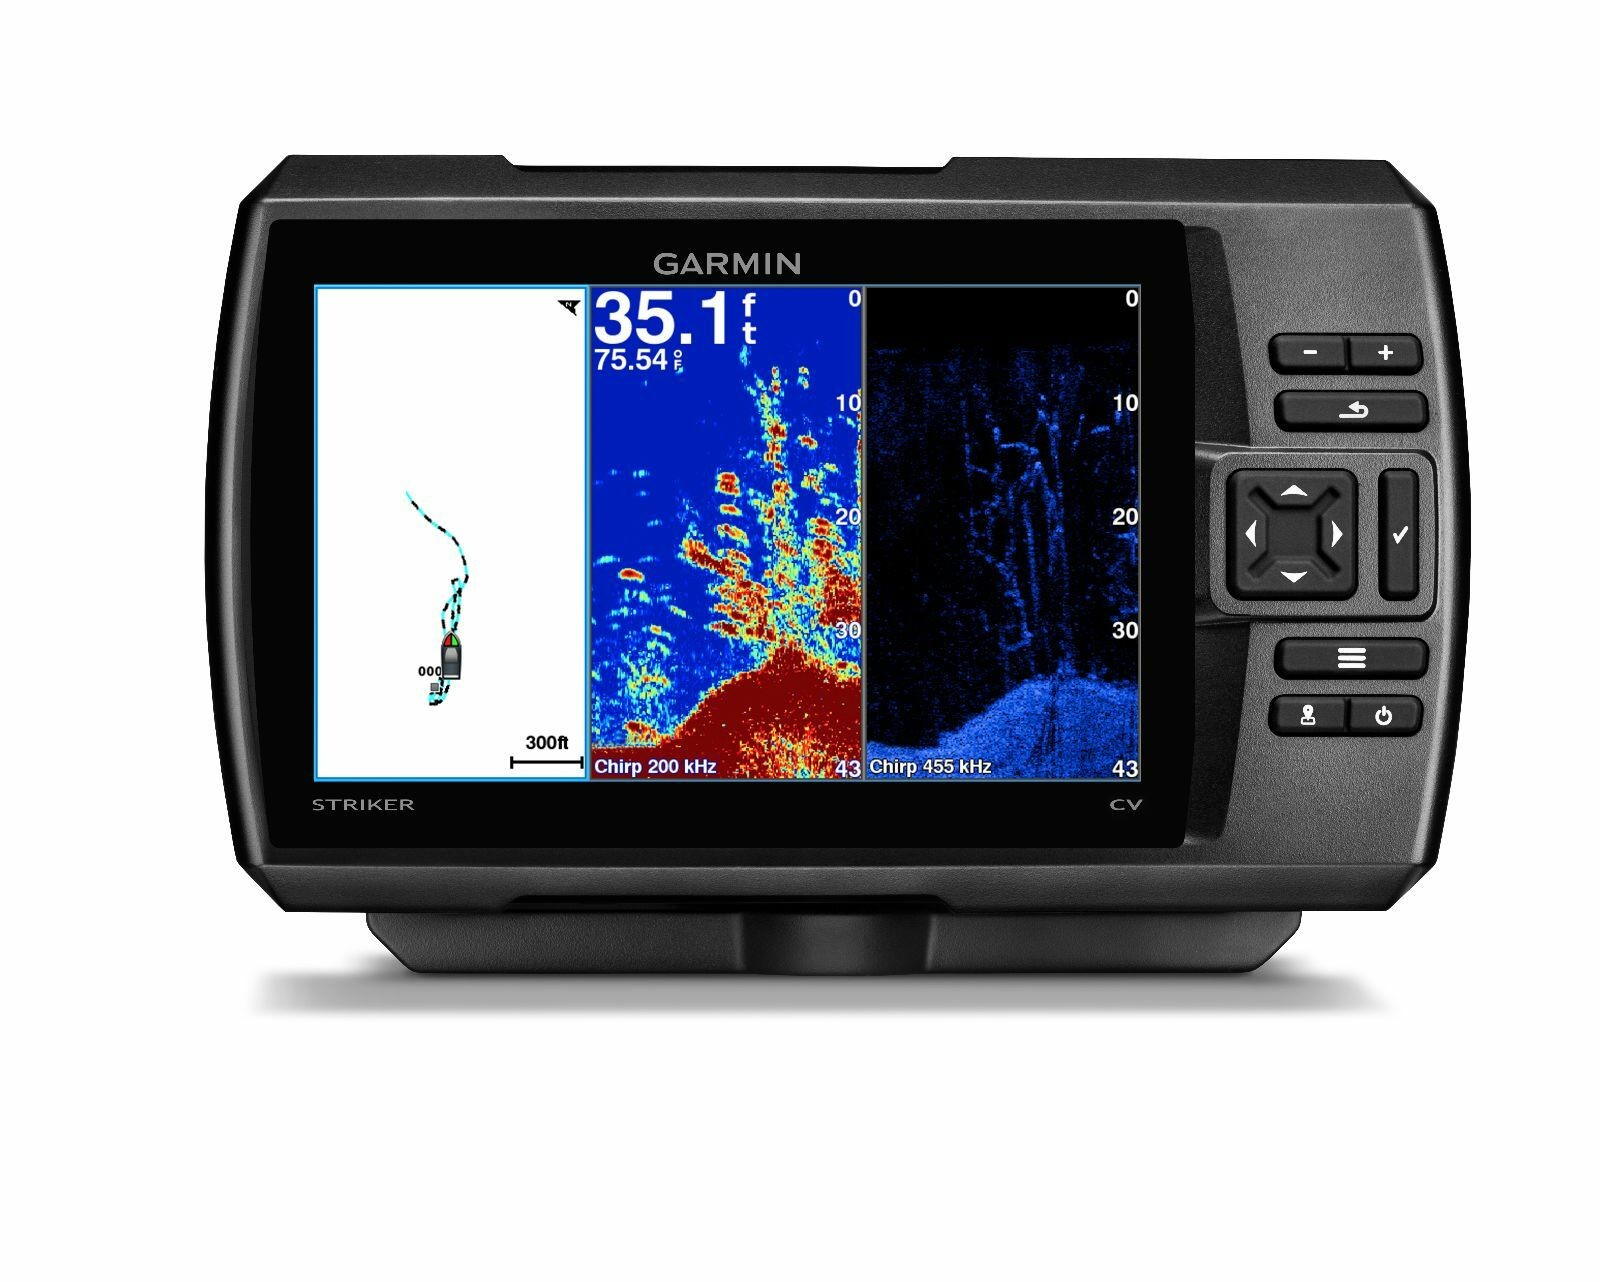 Garmin Striker Plus 4cv Wiring Diagram Garmin 010 00 Striker 7cv with Transducer Fish Finder Of Garmin Striker Plus 4cv Wiring Diagram